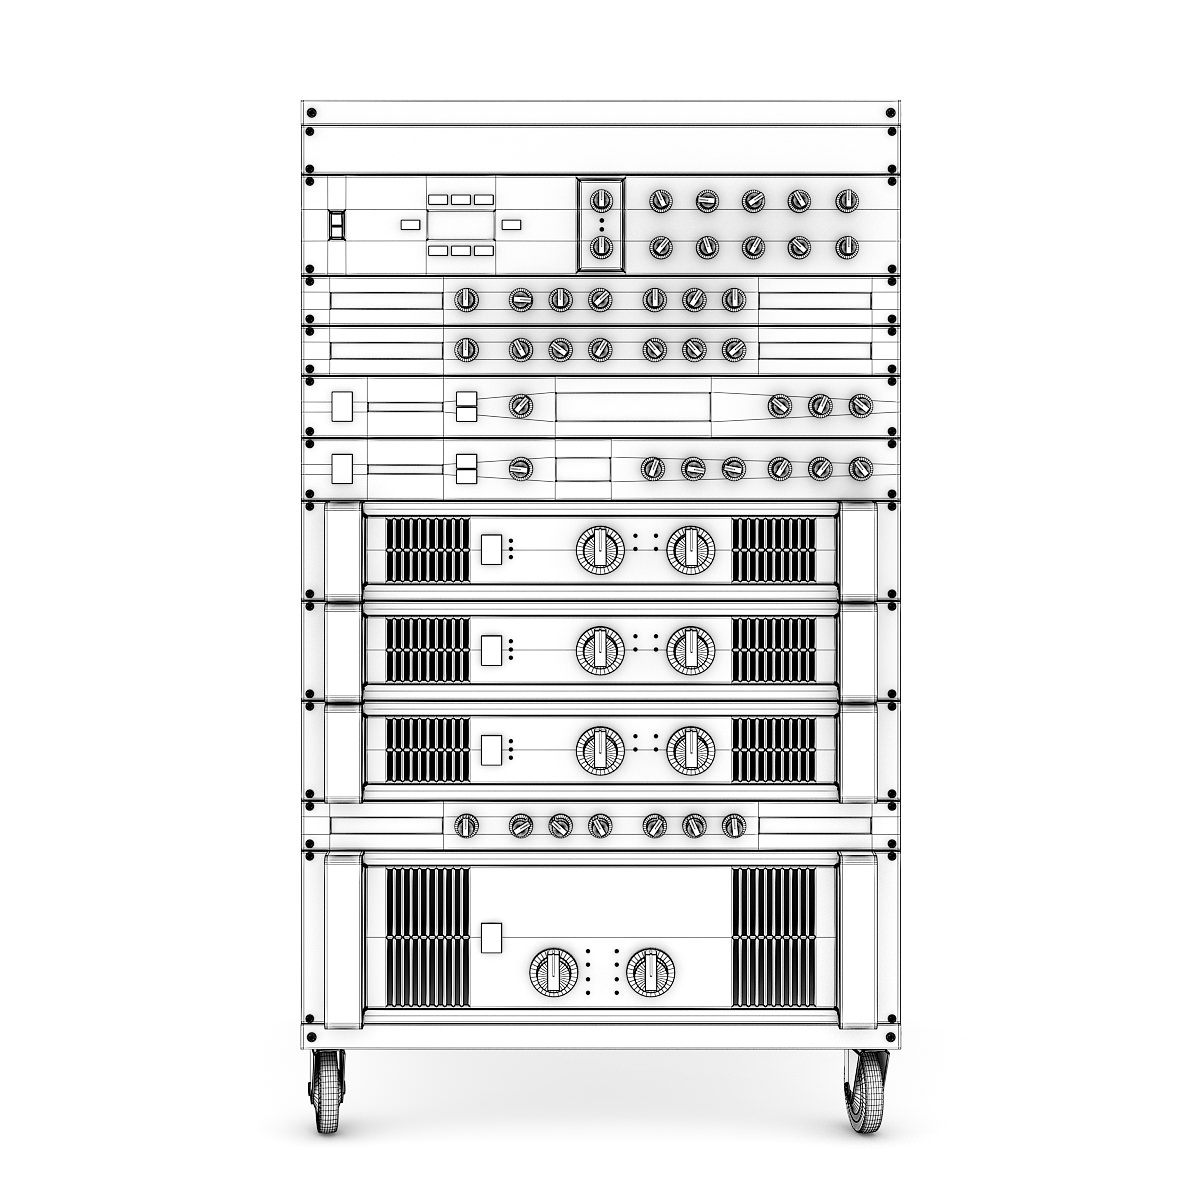 Audio Rack 1 3D model